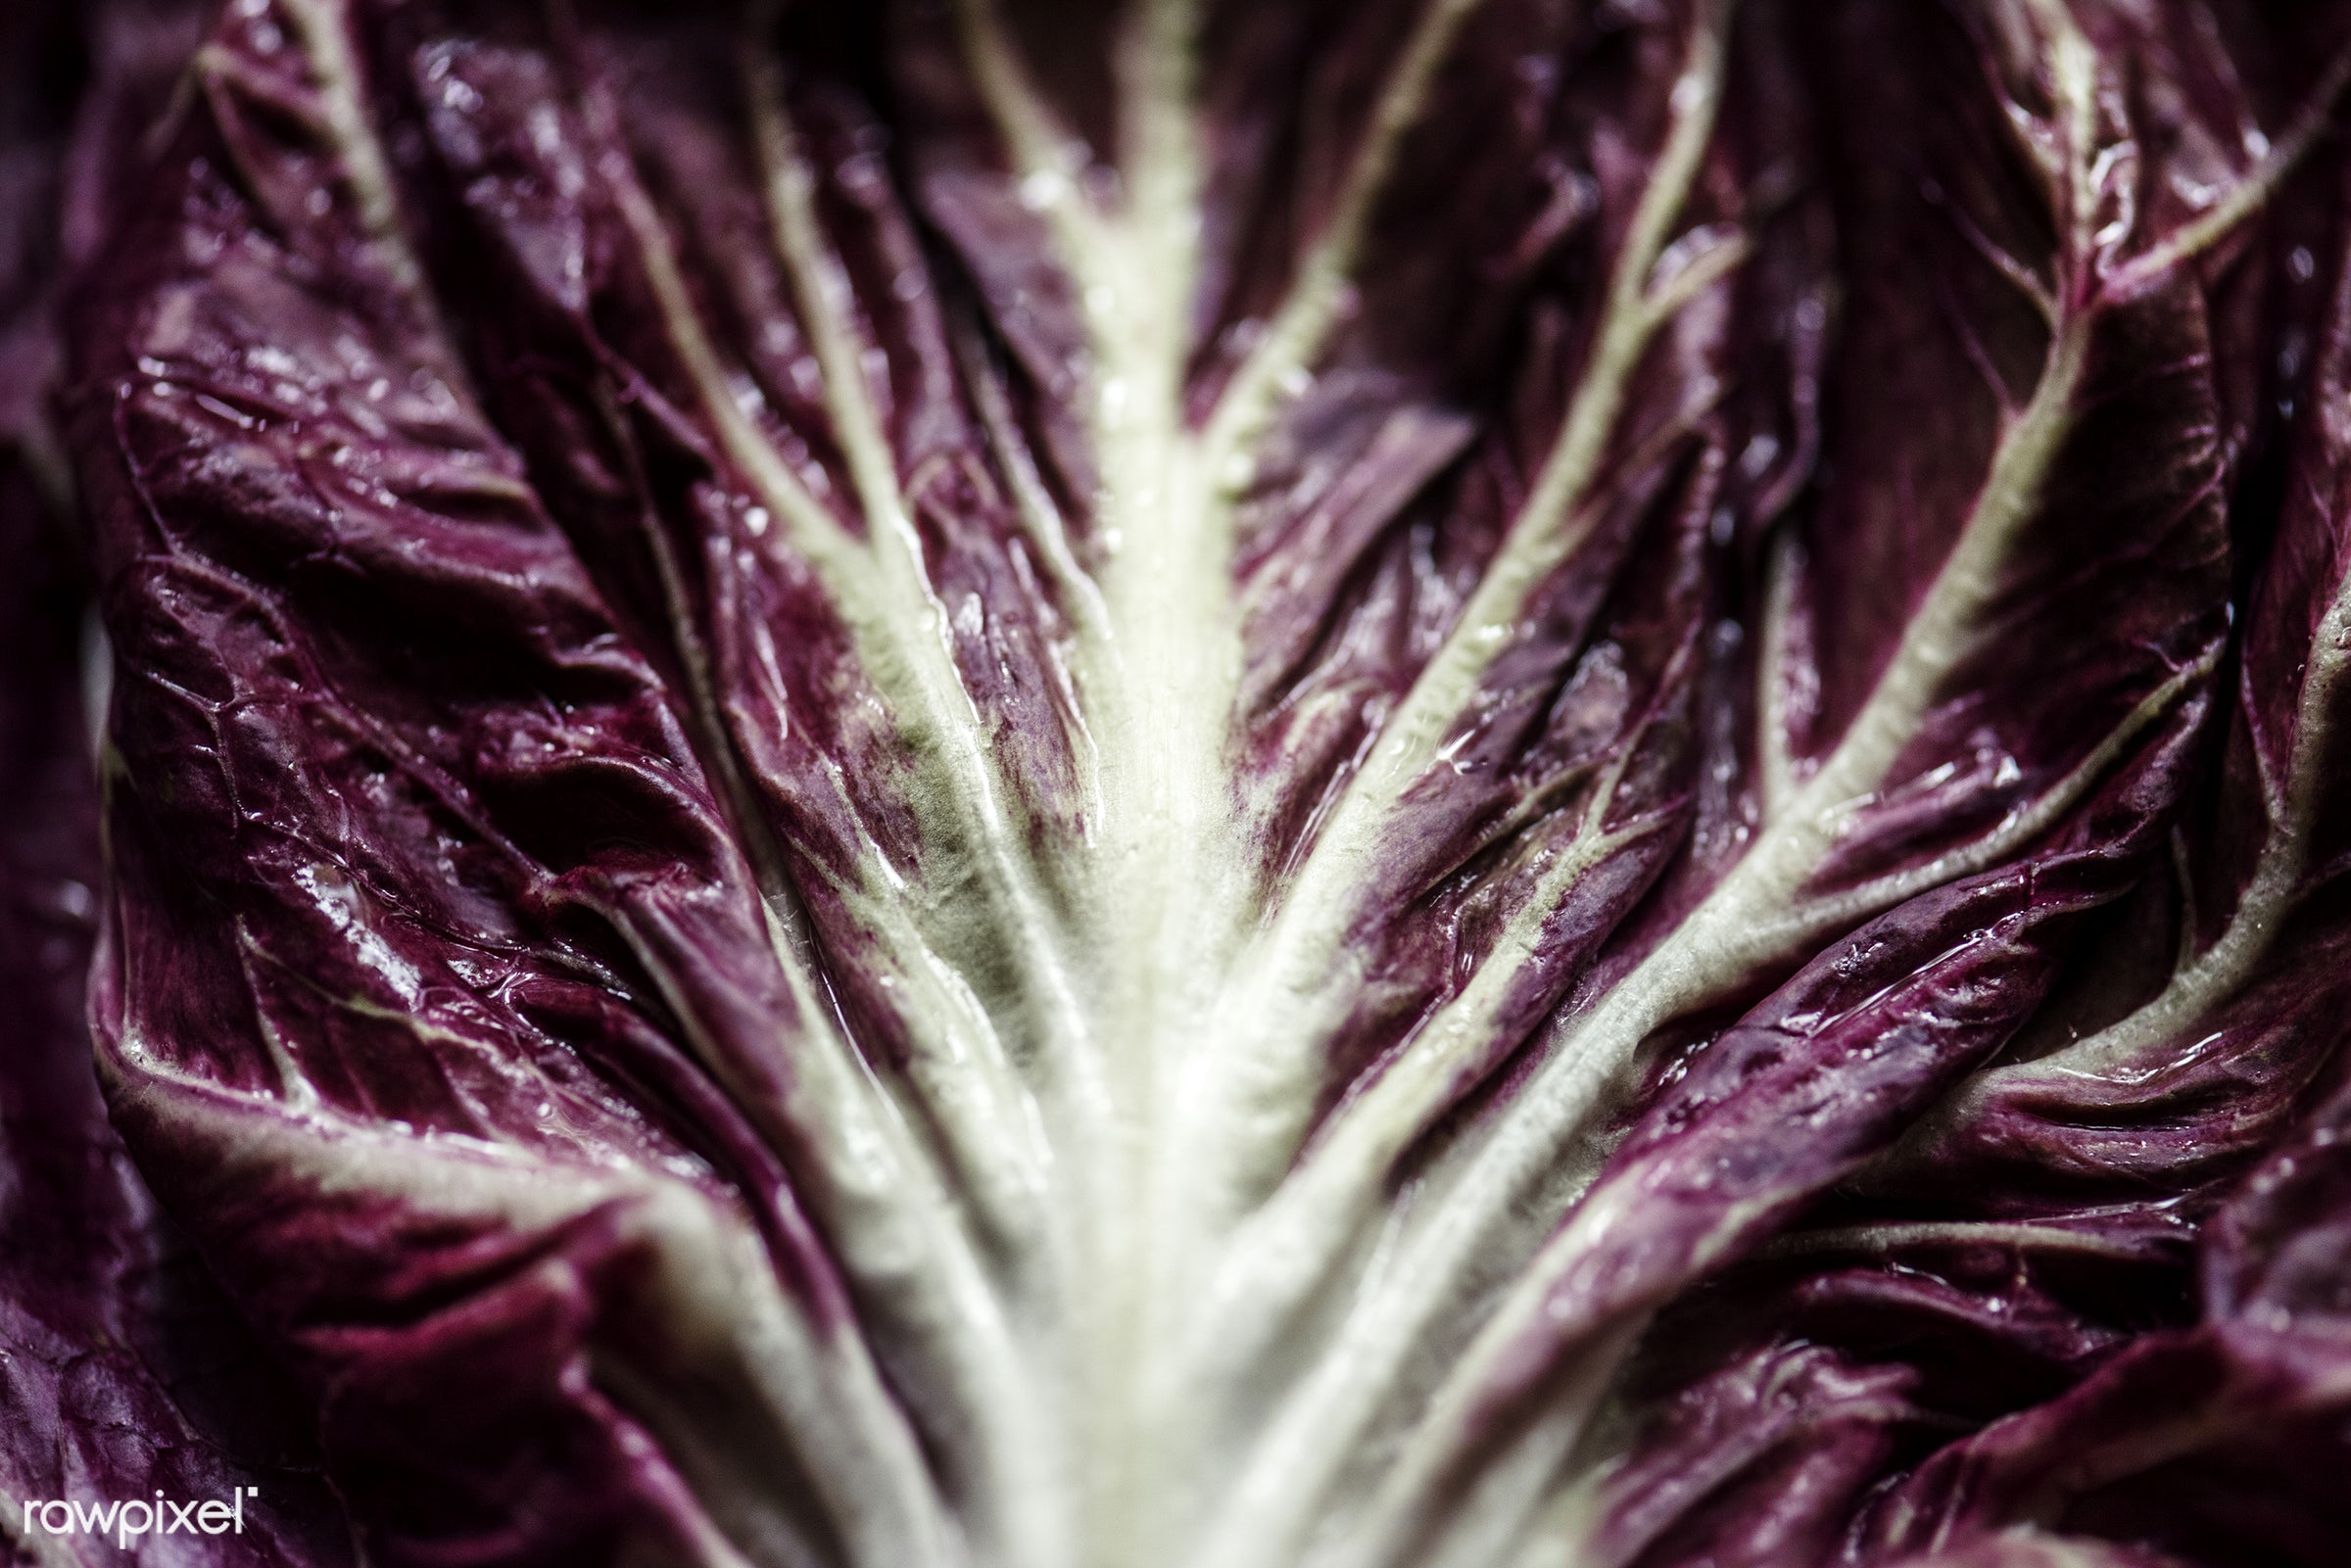 salad, raw, plant, nobody, radicchio, real, organic, red, nature, cabbage, fresh, background, healthy, vegetable, closeup